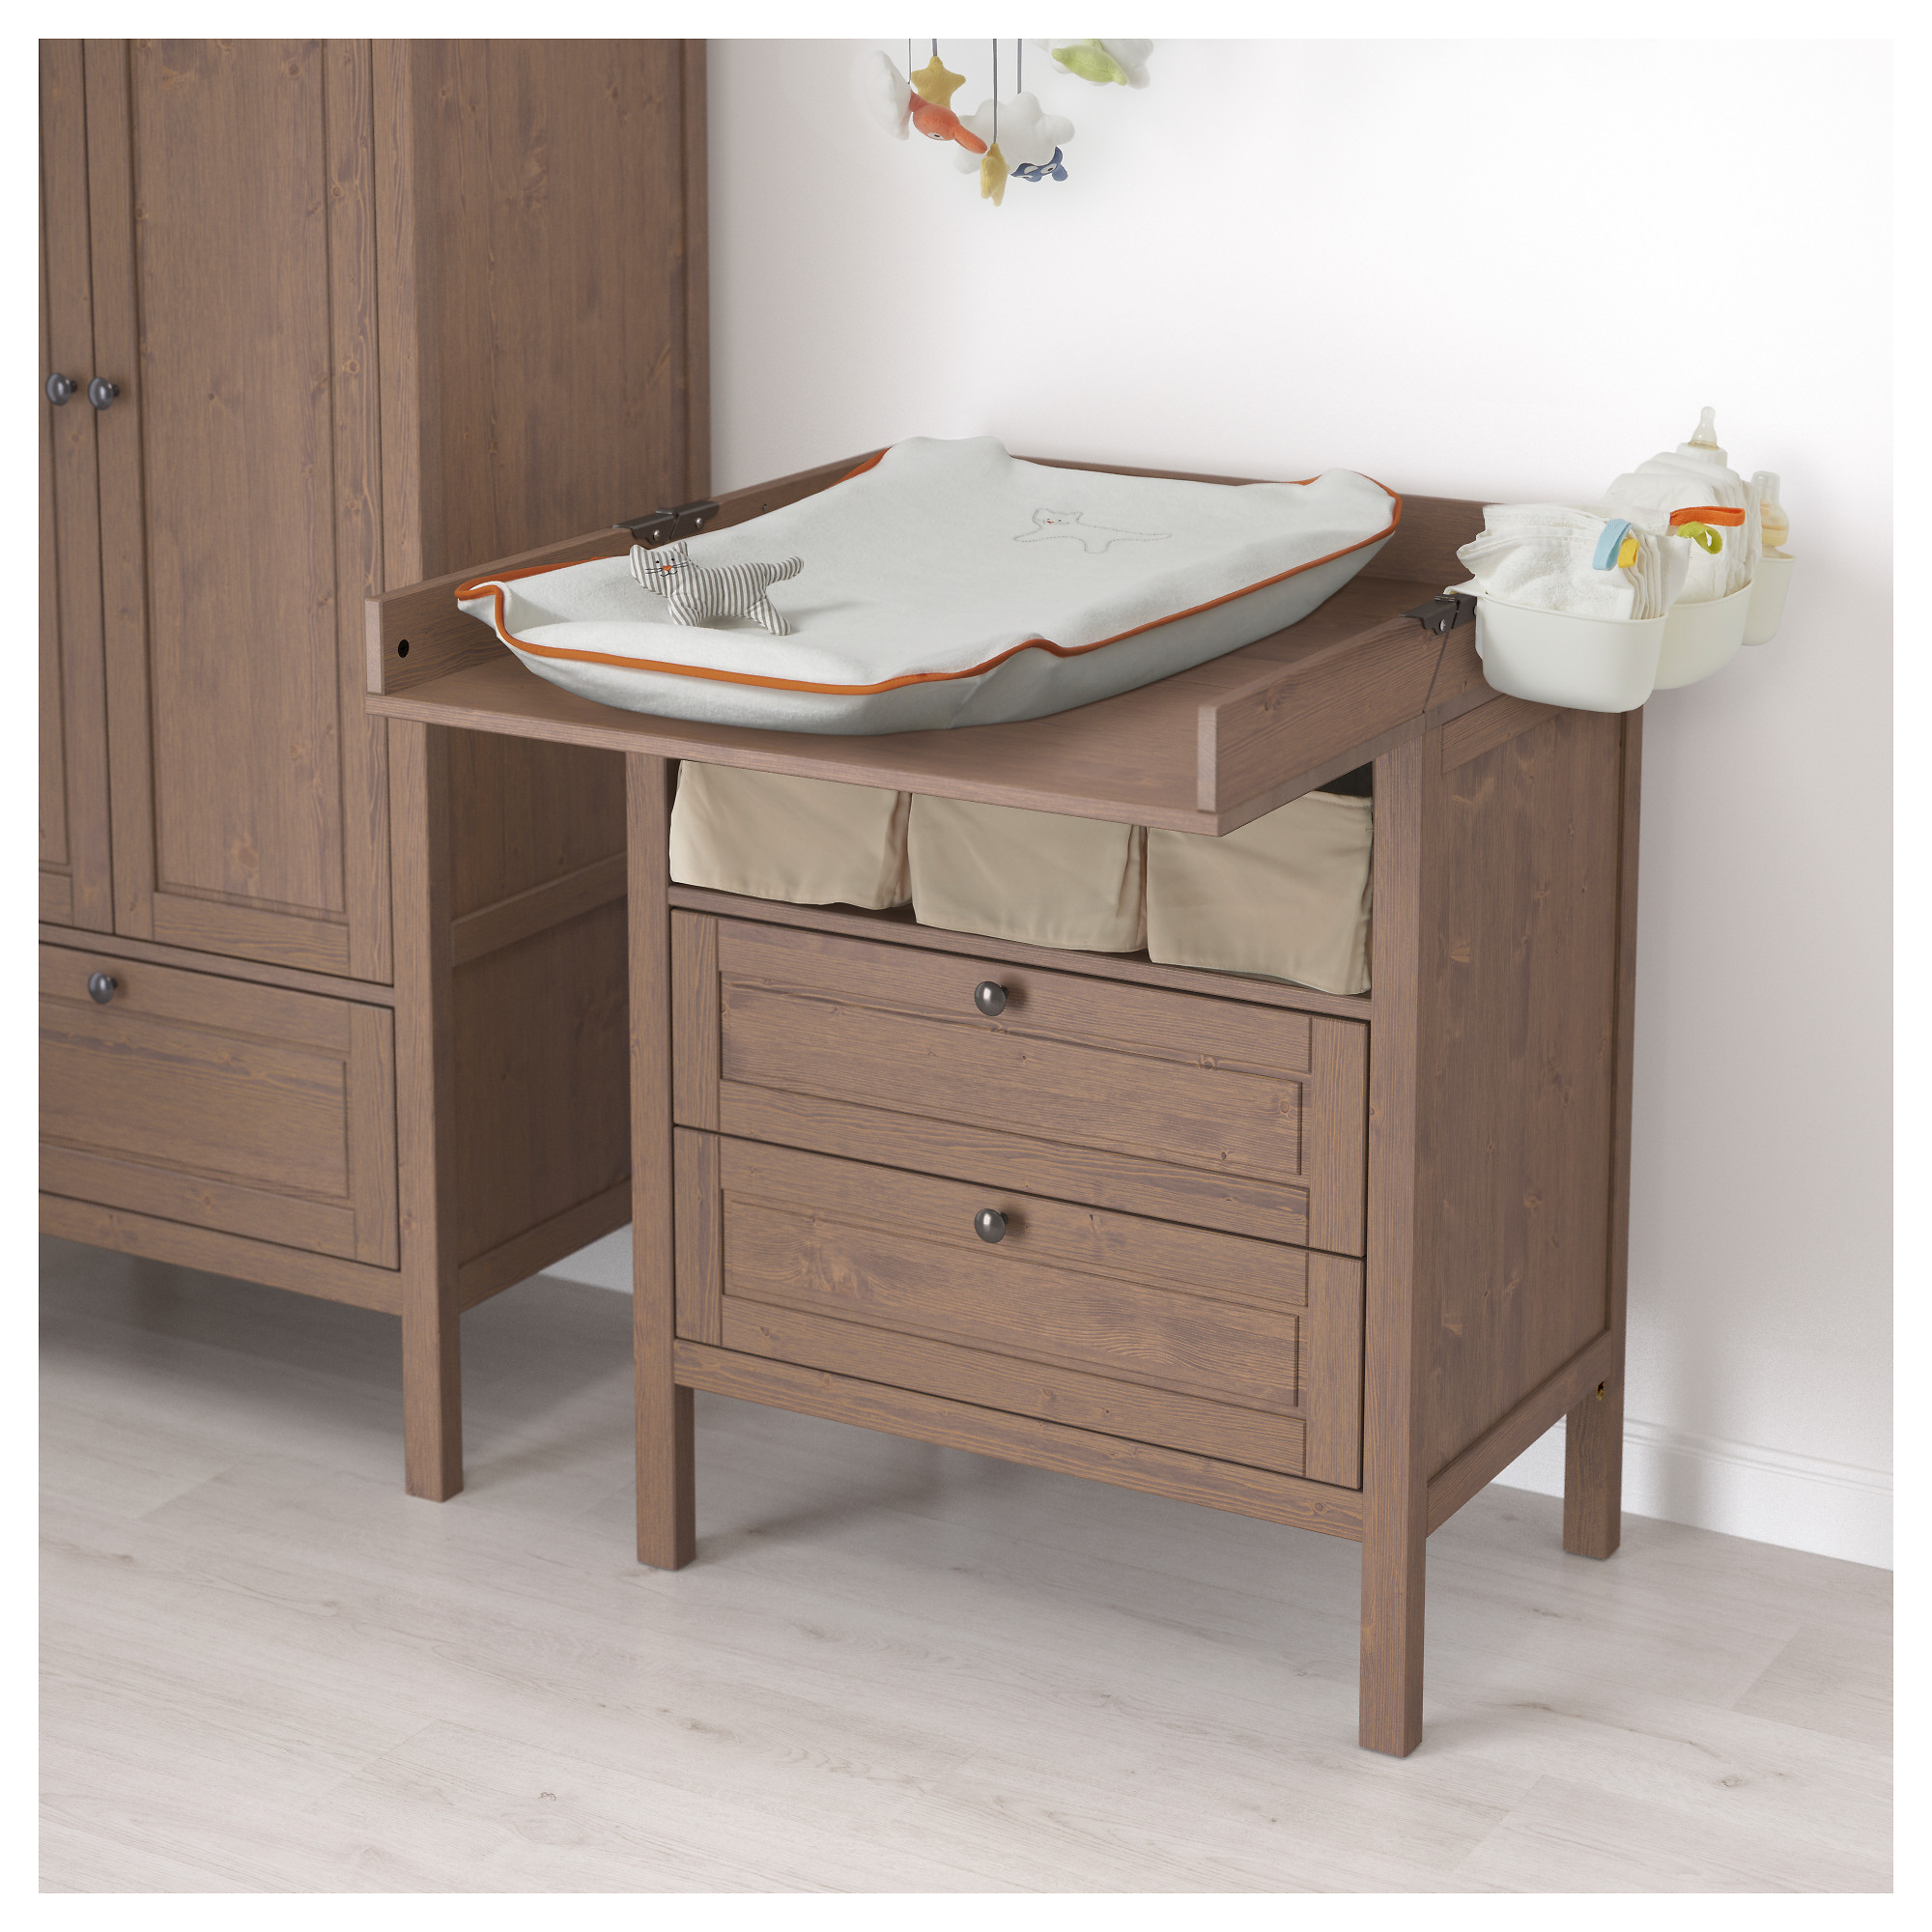 Charmant SUNDVIK Changing Table/chest Of Drawers